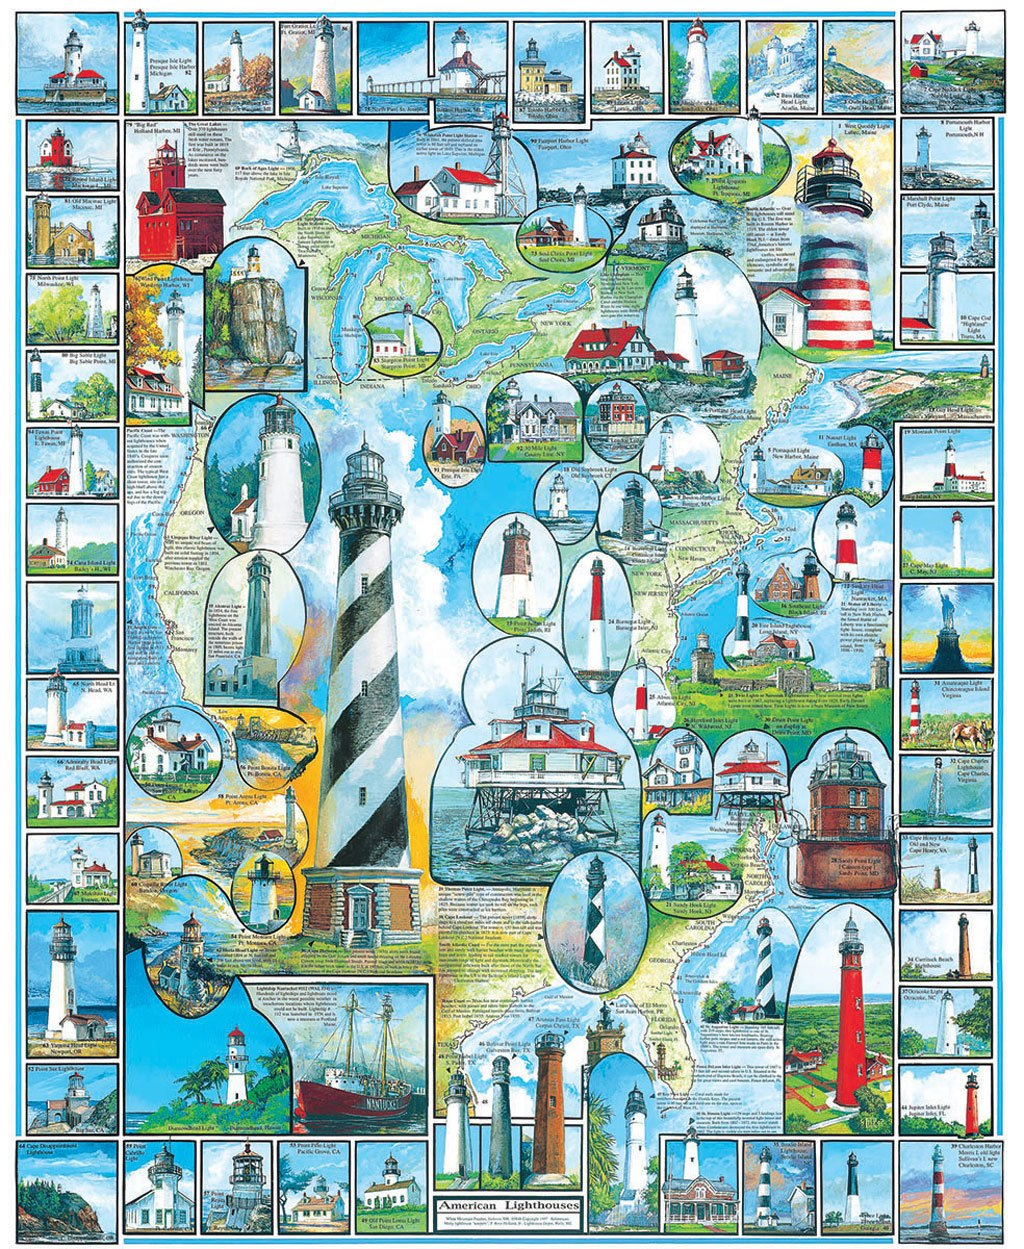 American Lighthouses - 1000pc Jigsaw Puzzle By White Mountain